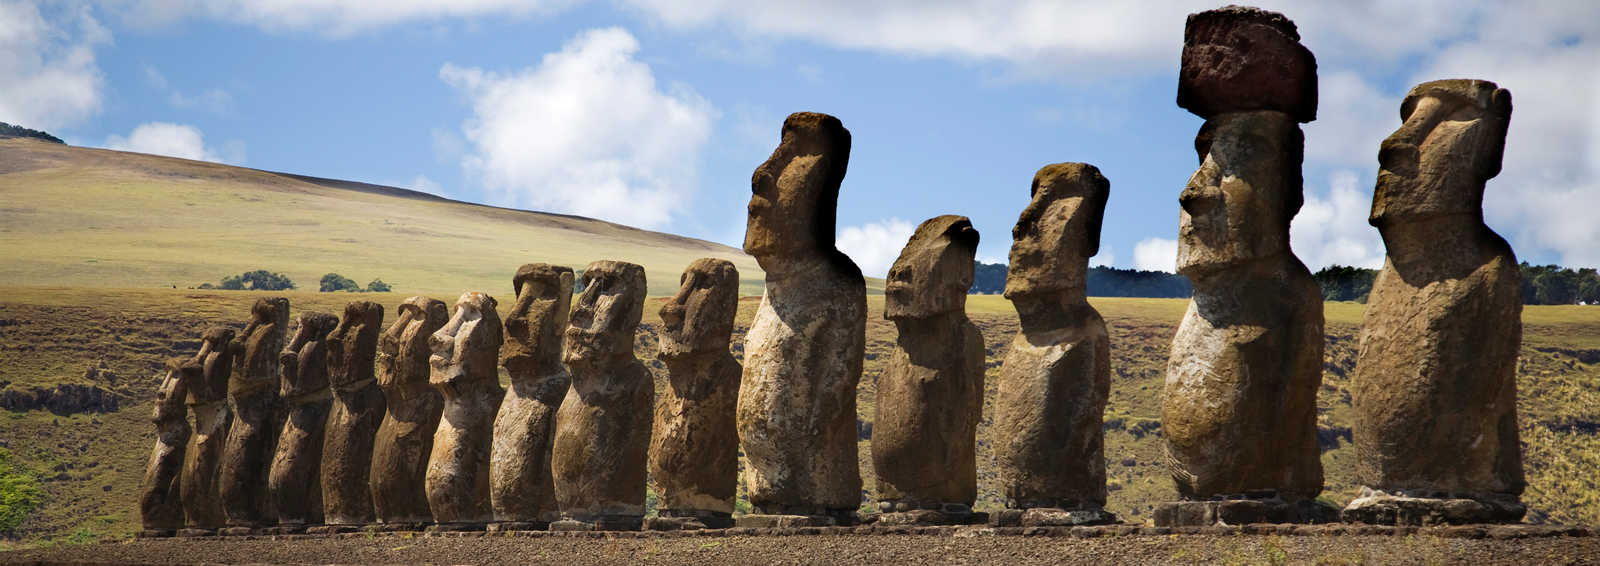 Statues at Easter Island